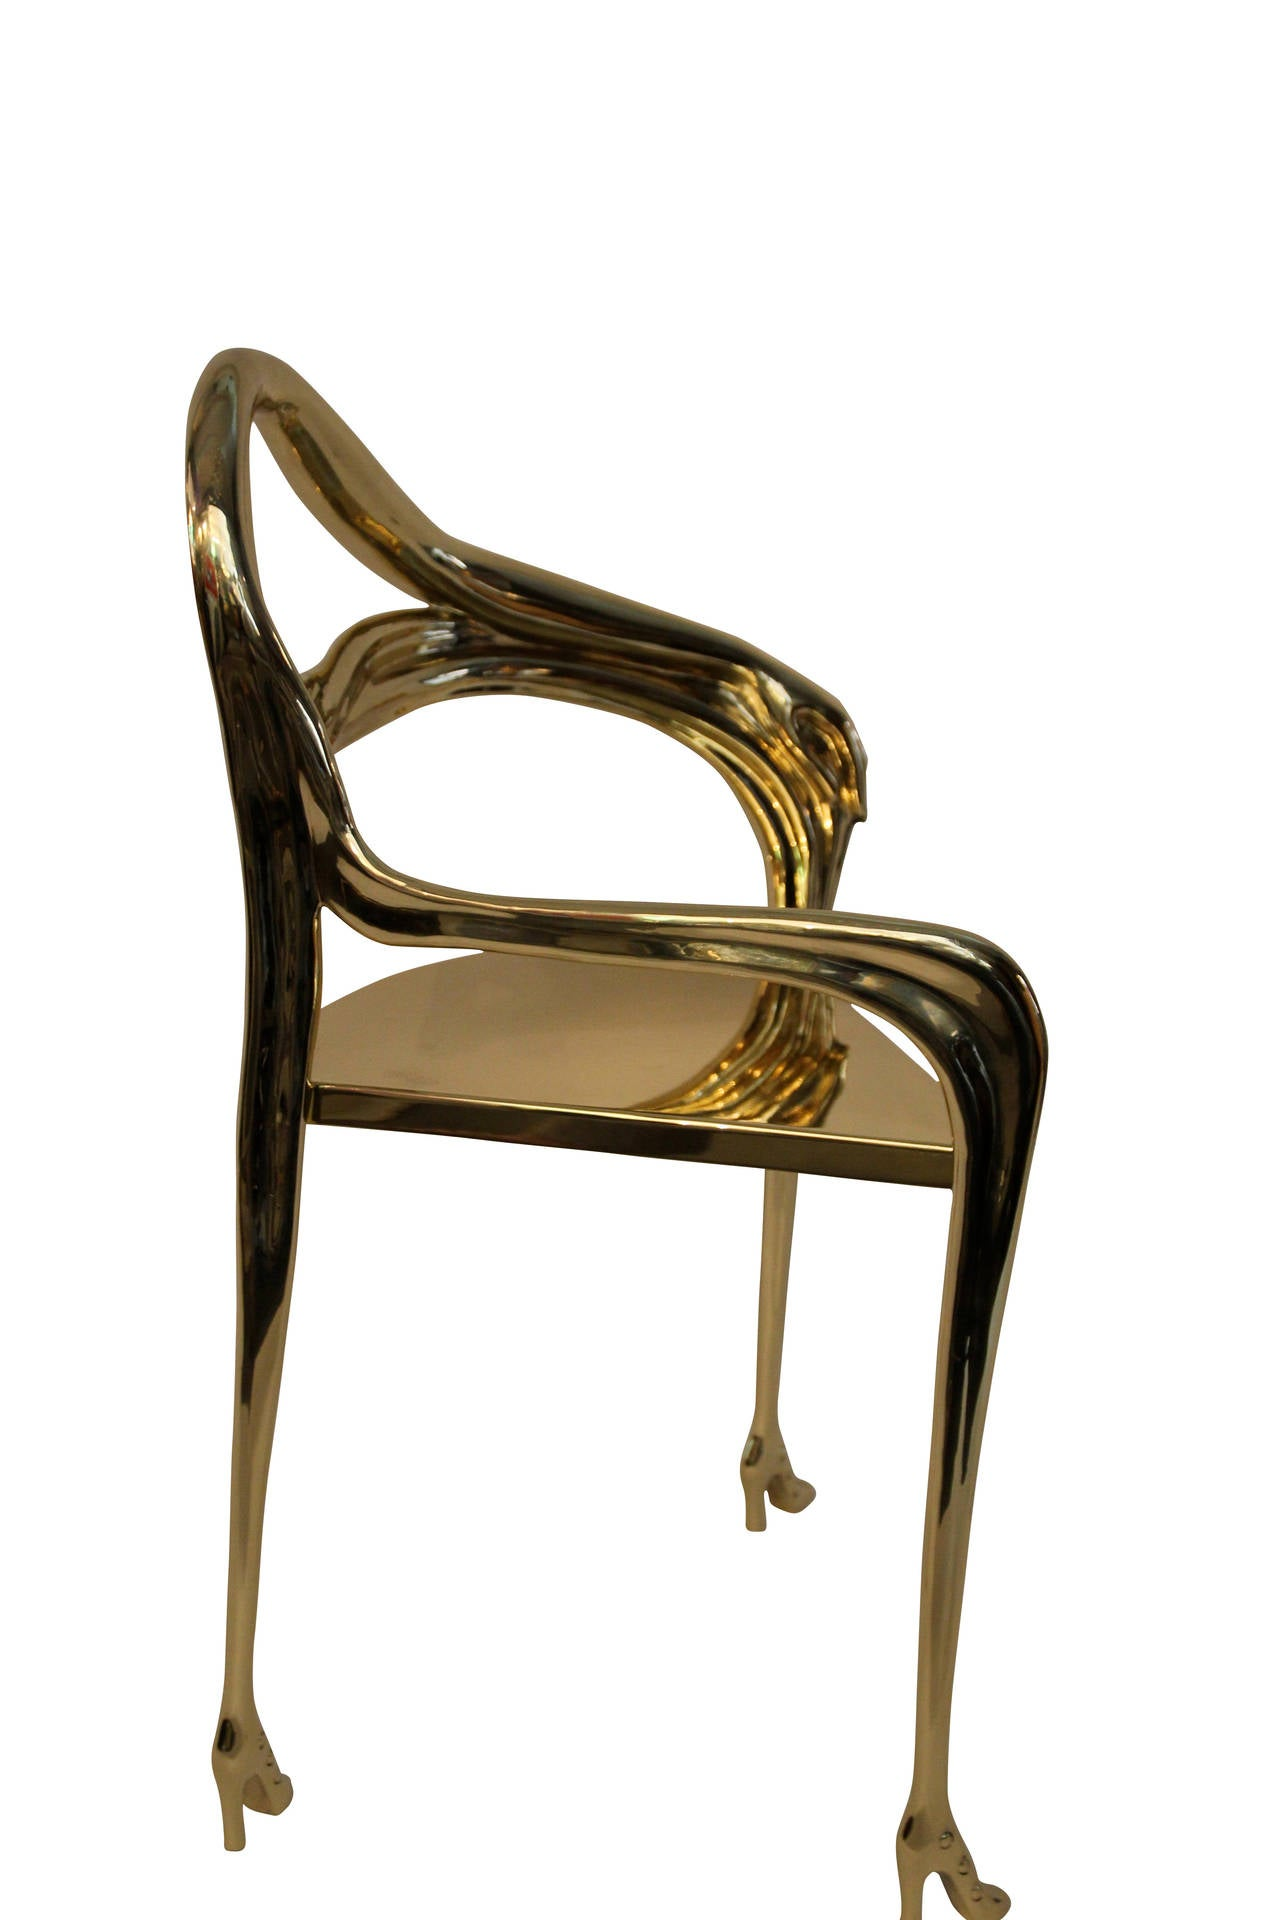 salvador dali furniture. salvador dali furniture l